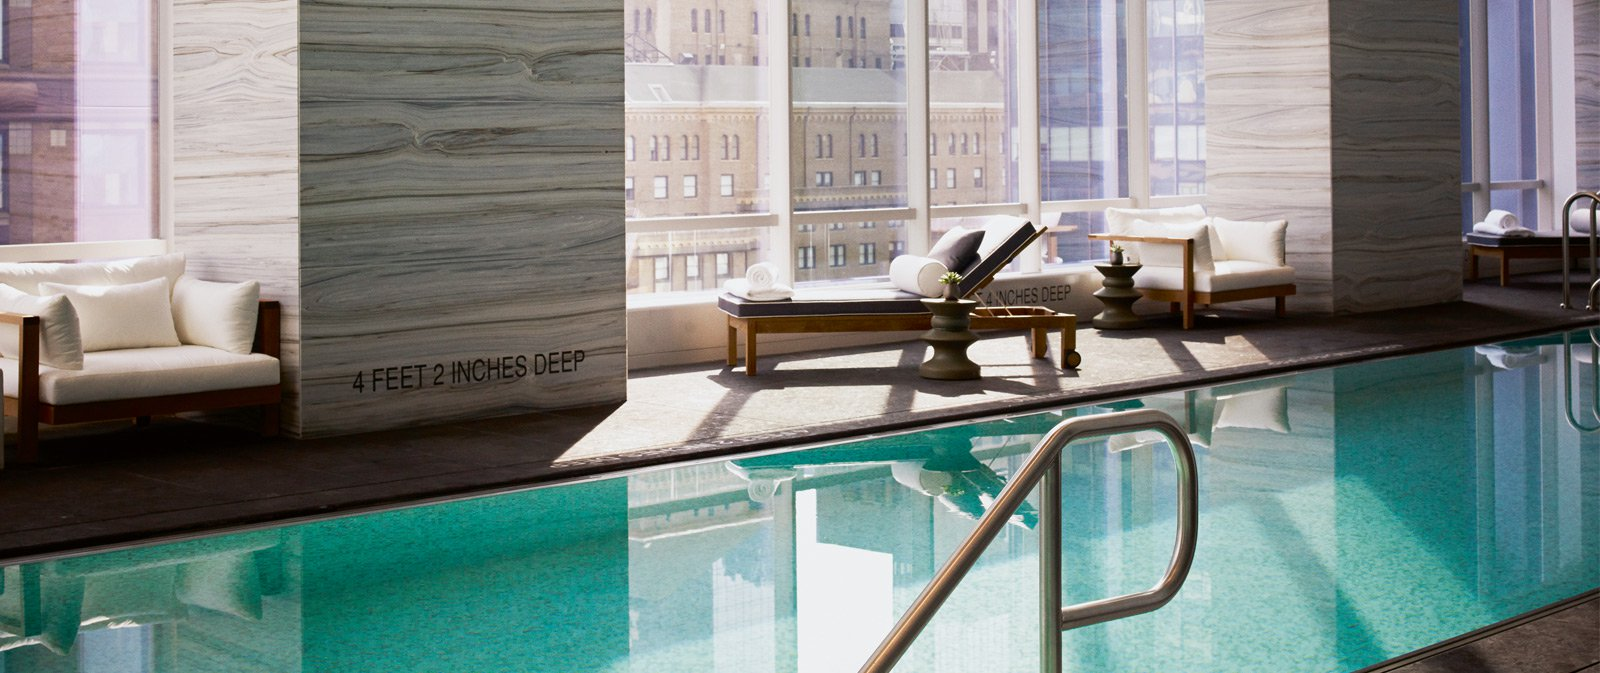 Gaze out over Midtown from the Park Hyatt New York's sensational pool and sauna room.